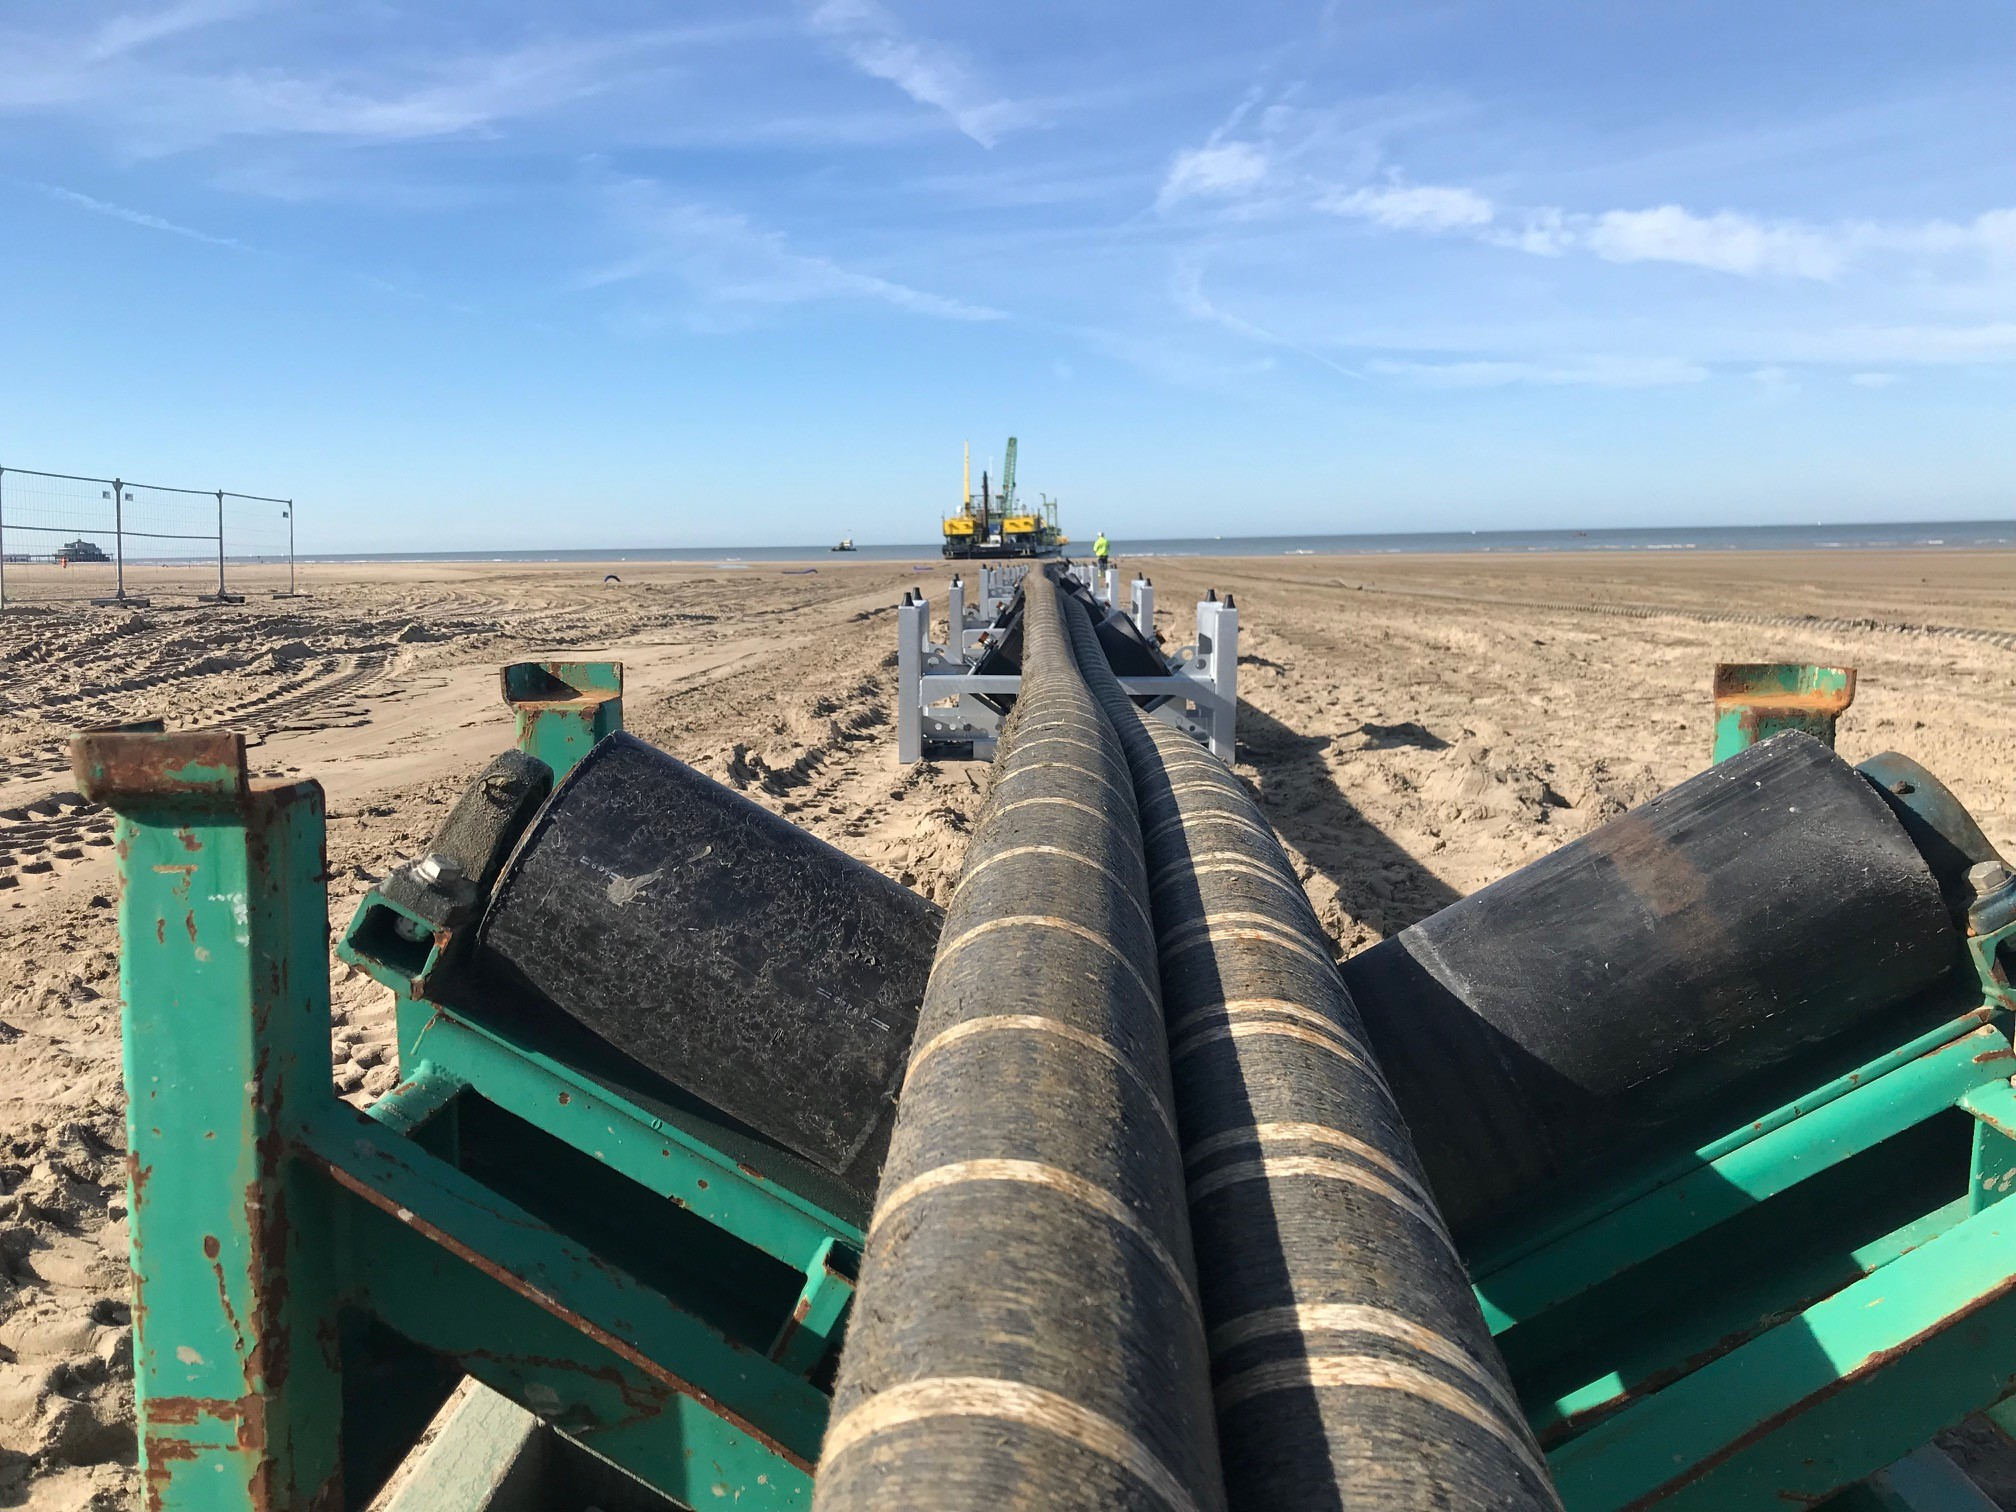 Interconnector cables being pulled across a beach - used for the National Grid article 'Connecting electricity systems for a greener Britain'